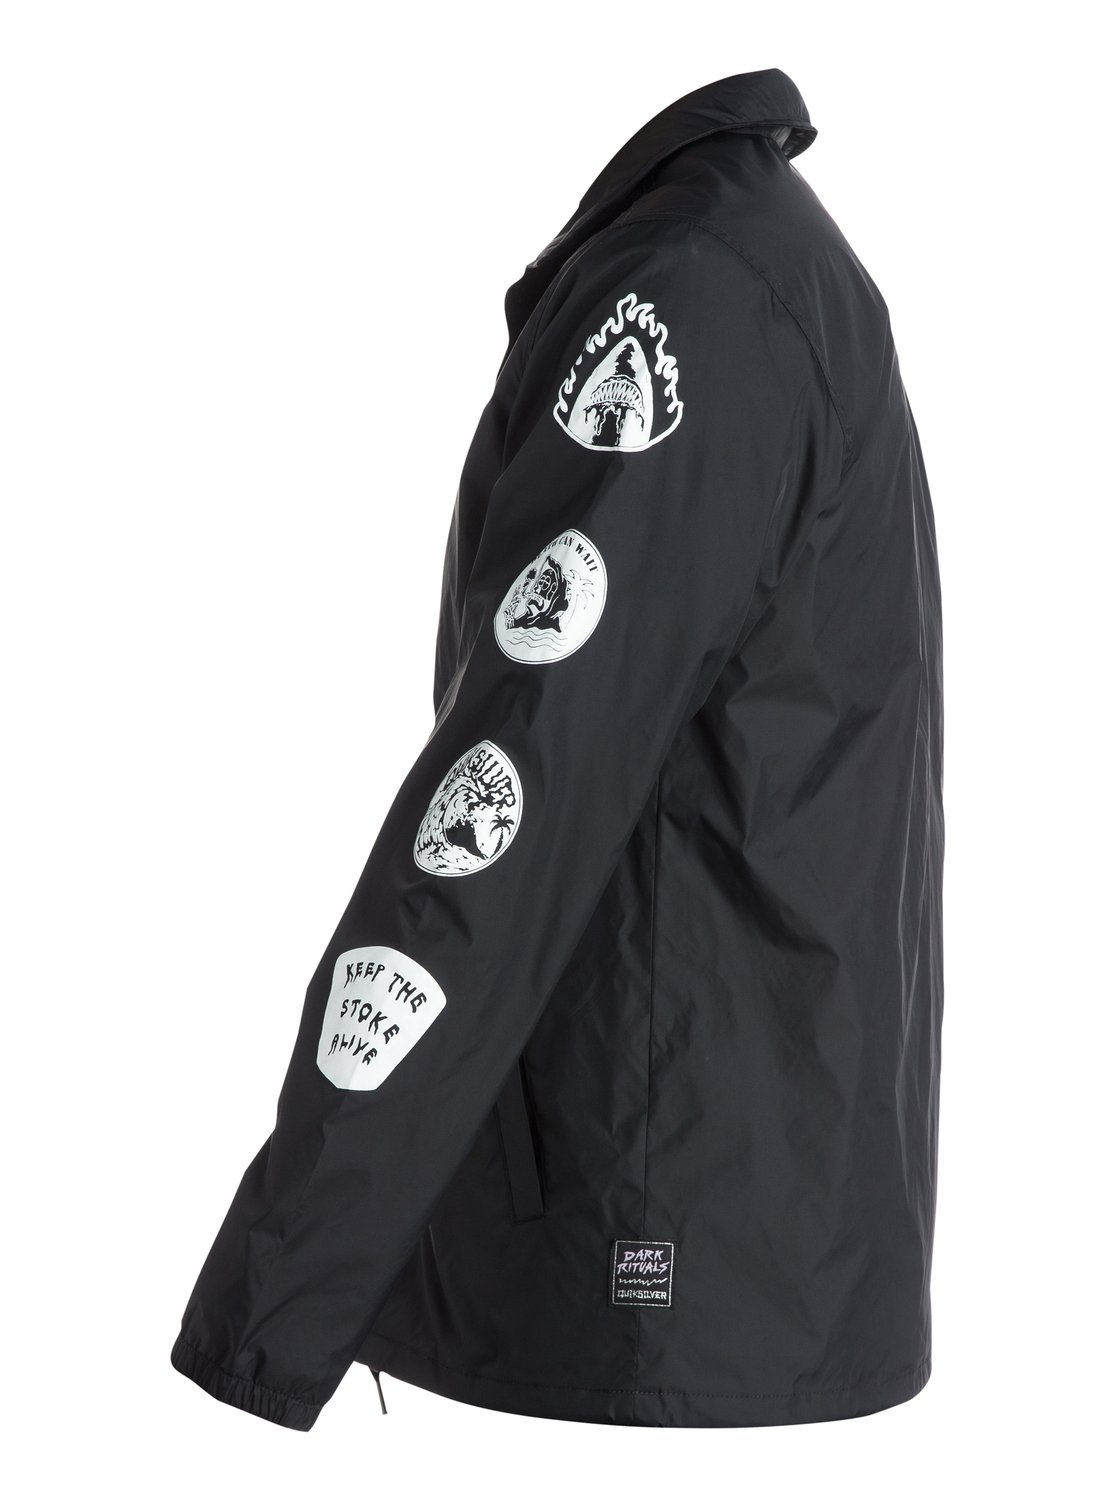 Quiksilver mens jacket - 1 Death By Stereo Coach Jacket Eqyjk03118 Quiksilver